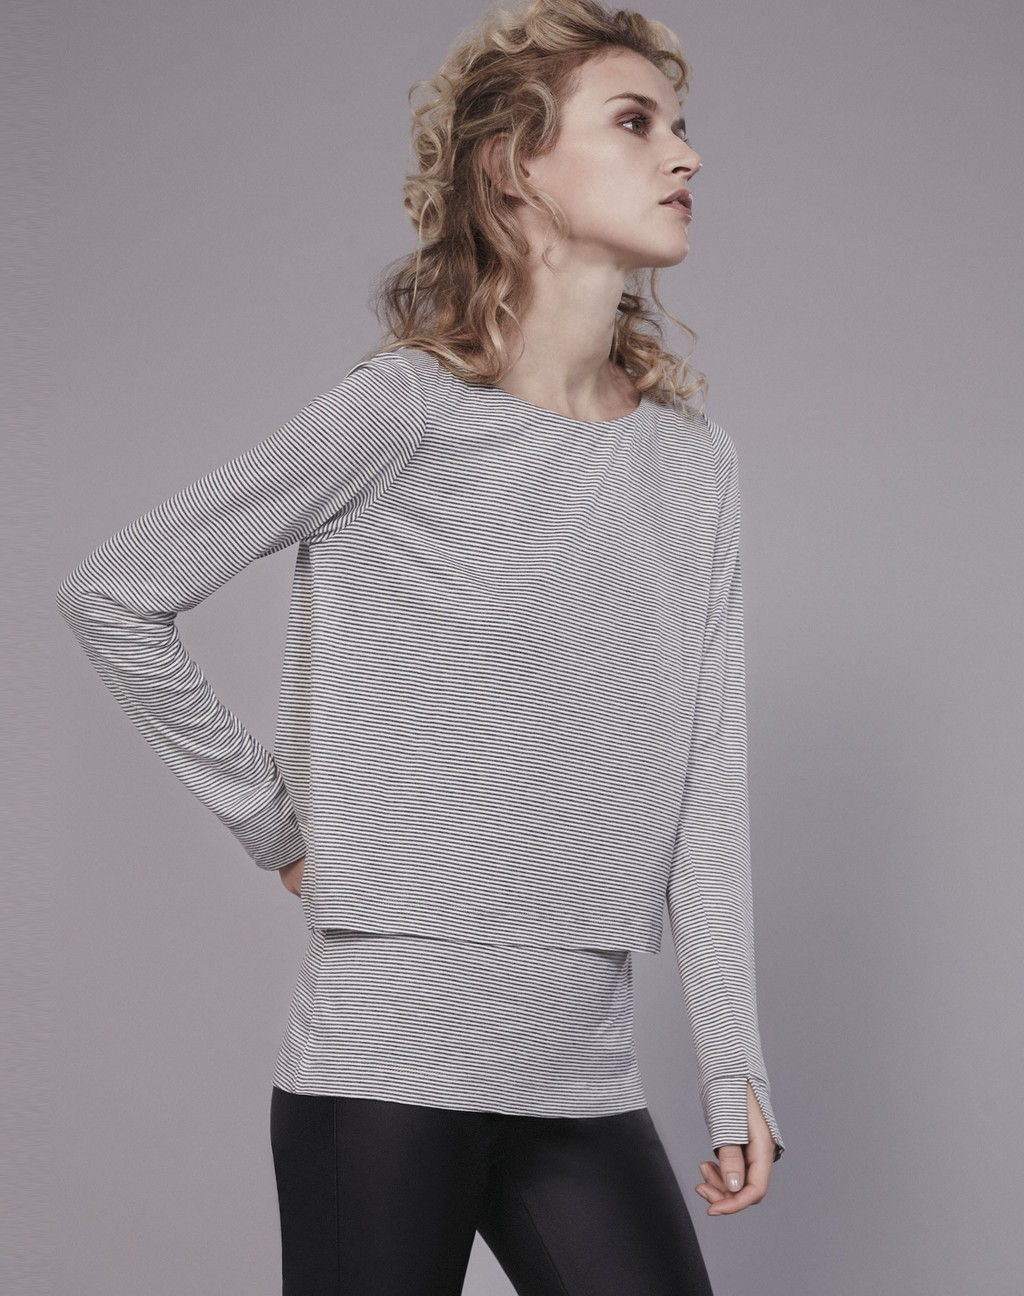 Double Layer Stripe Tee Grey/Soft White - neckline: round neck; pattern: plain; style: t-shirt; predominant colour: mid grey; occasions: casual, creative work; length: standard; fibres: cotton - stretch; fit: loose; sleeve length: long sleeve; sleeve style: standard; pattern type: fabric; texture group: jersey - stretchy/drapey; season: s/s 2016